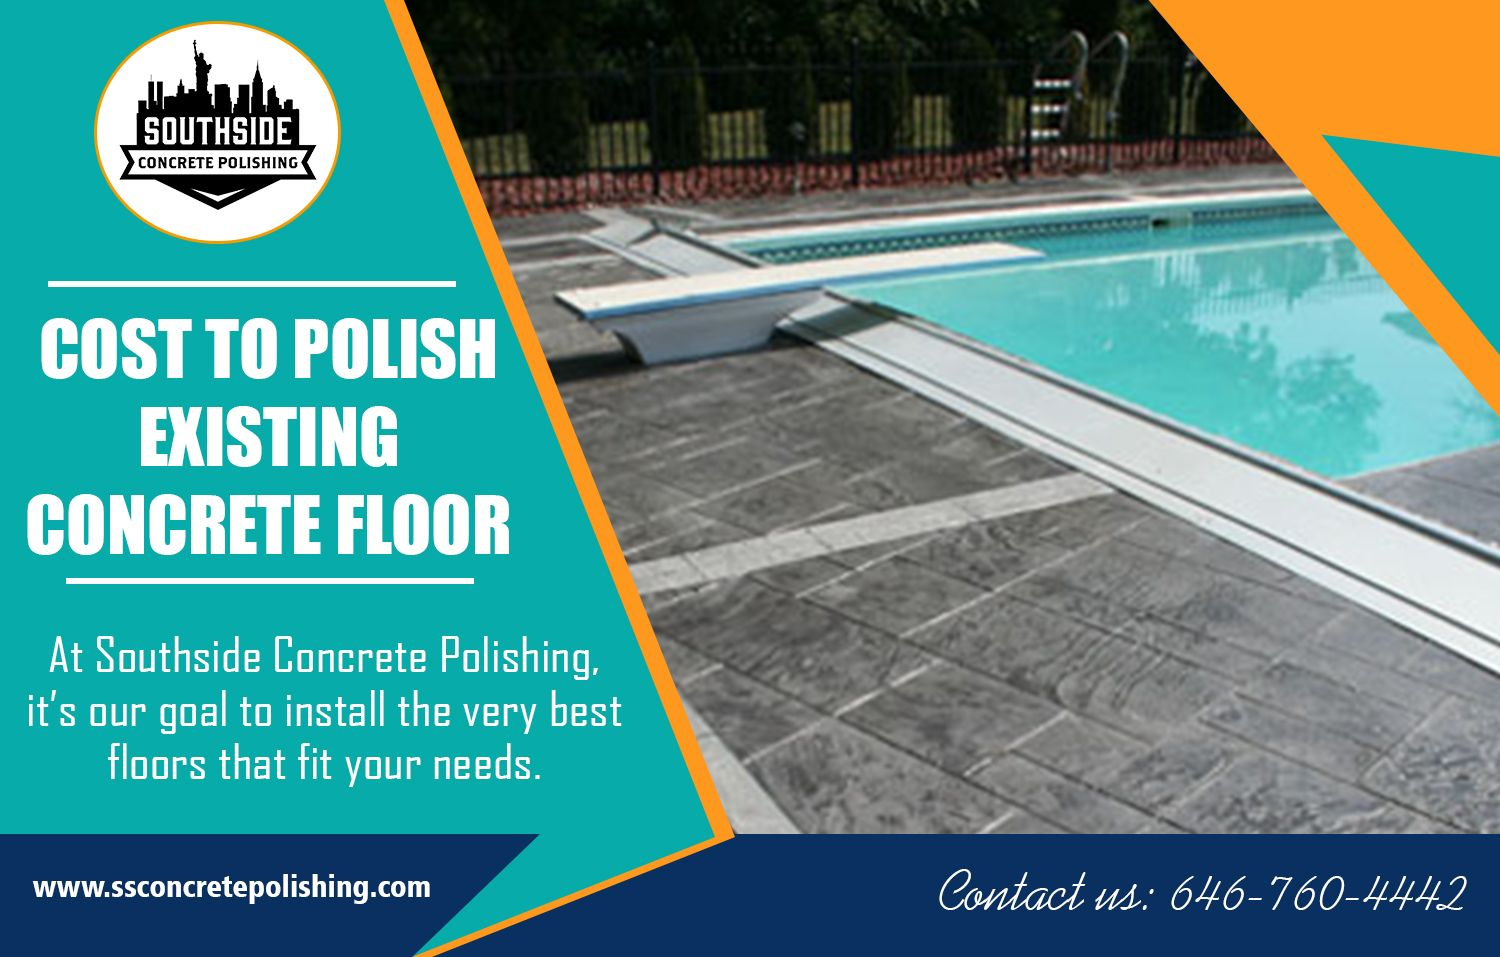 How Much Does It cost to polish the existing concrete